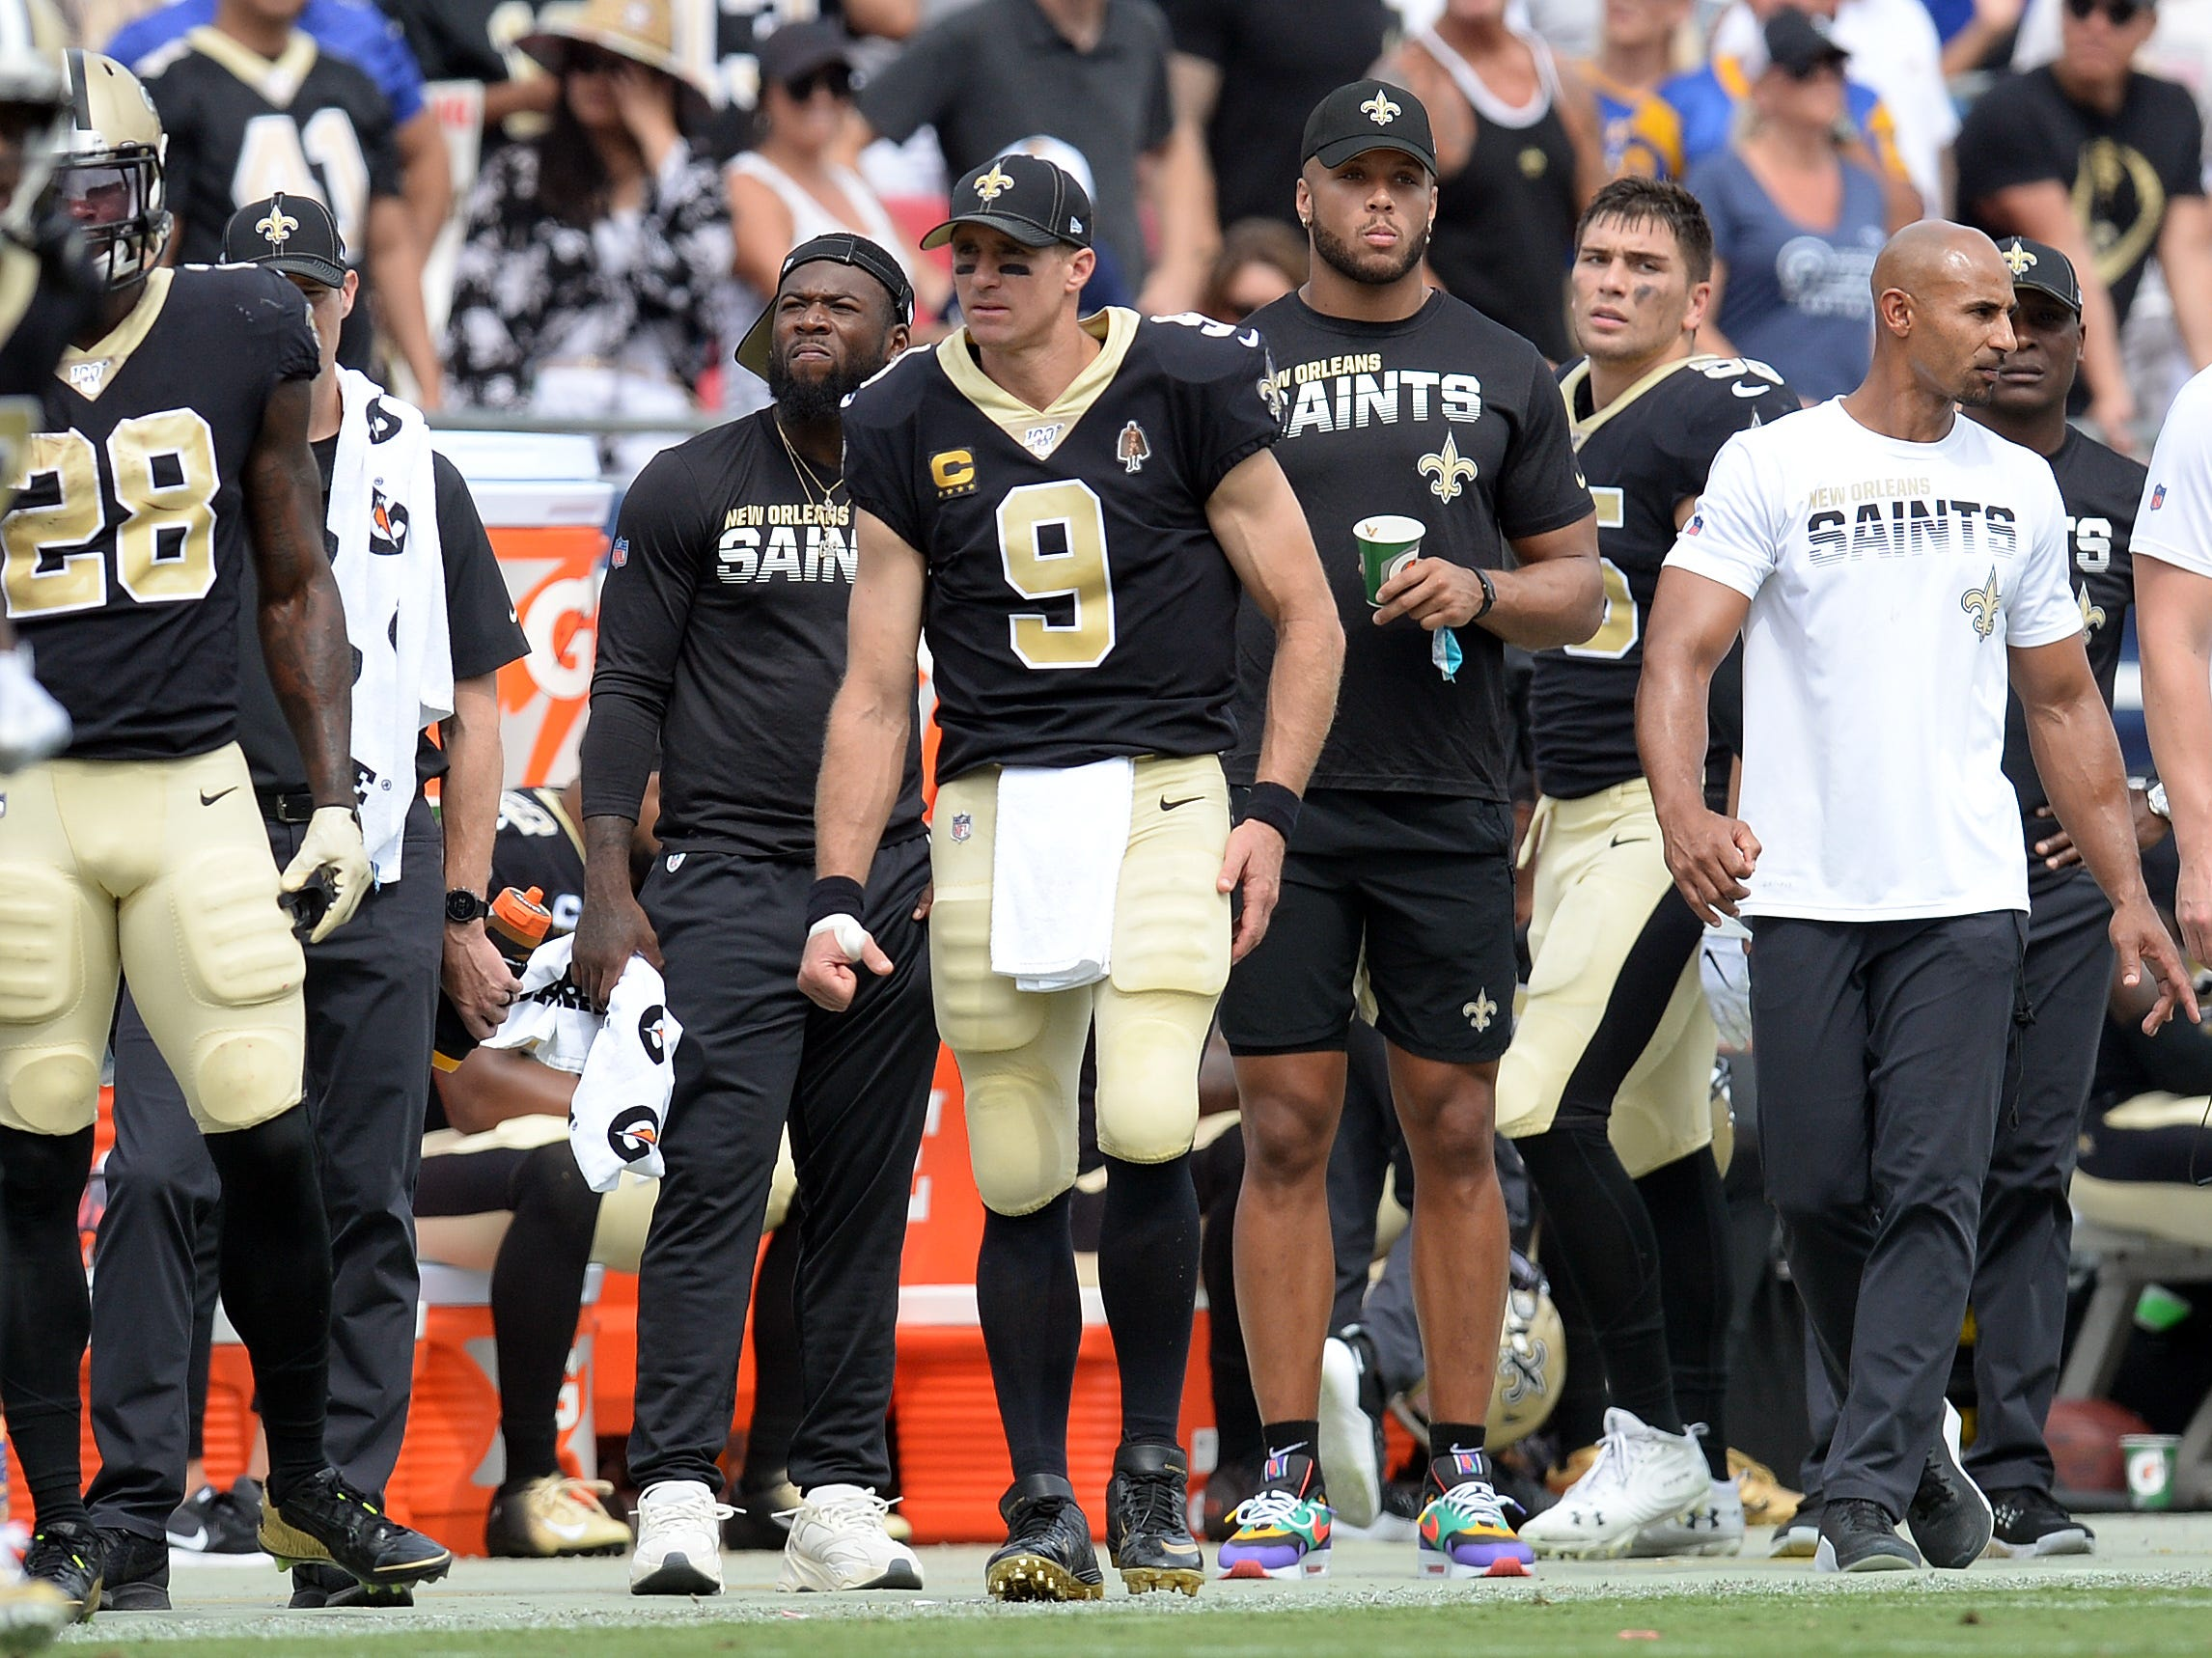 Opinion: Saints dealt more bad breaks with Drew Brees' injury, another blown call